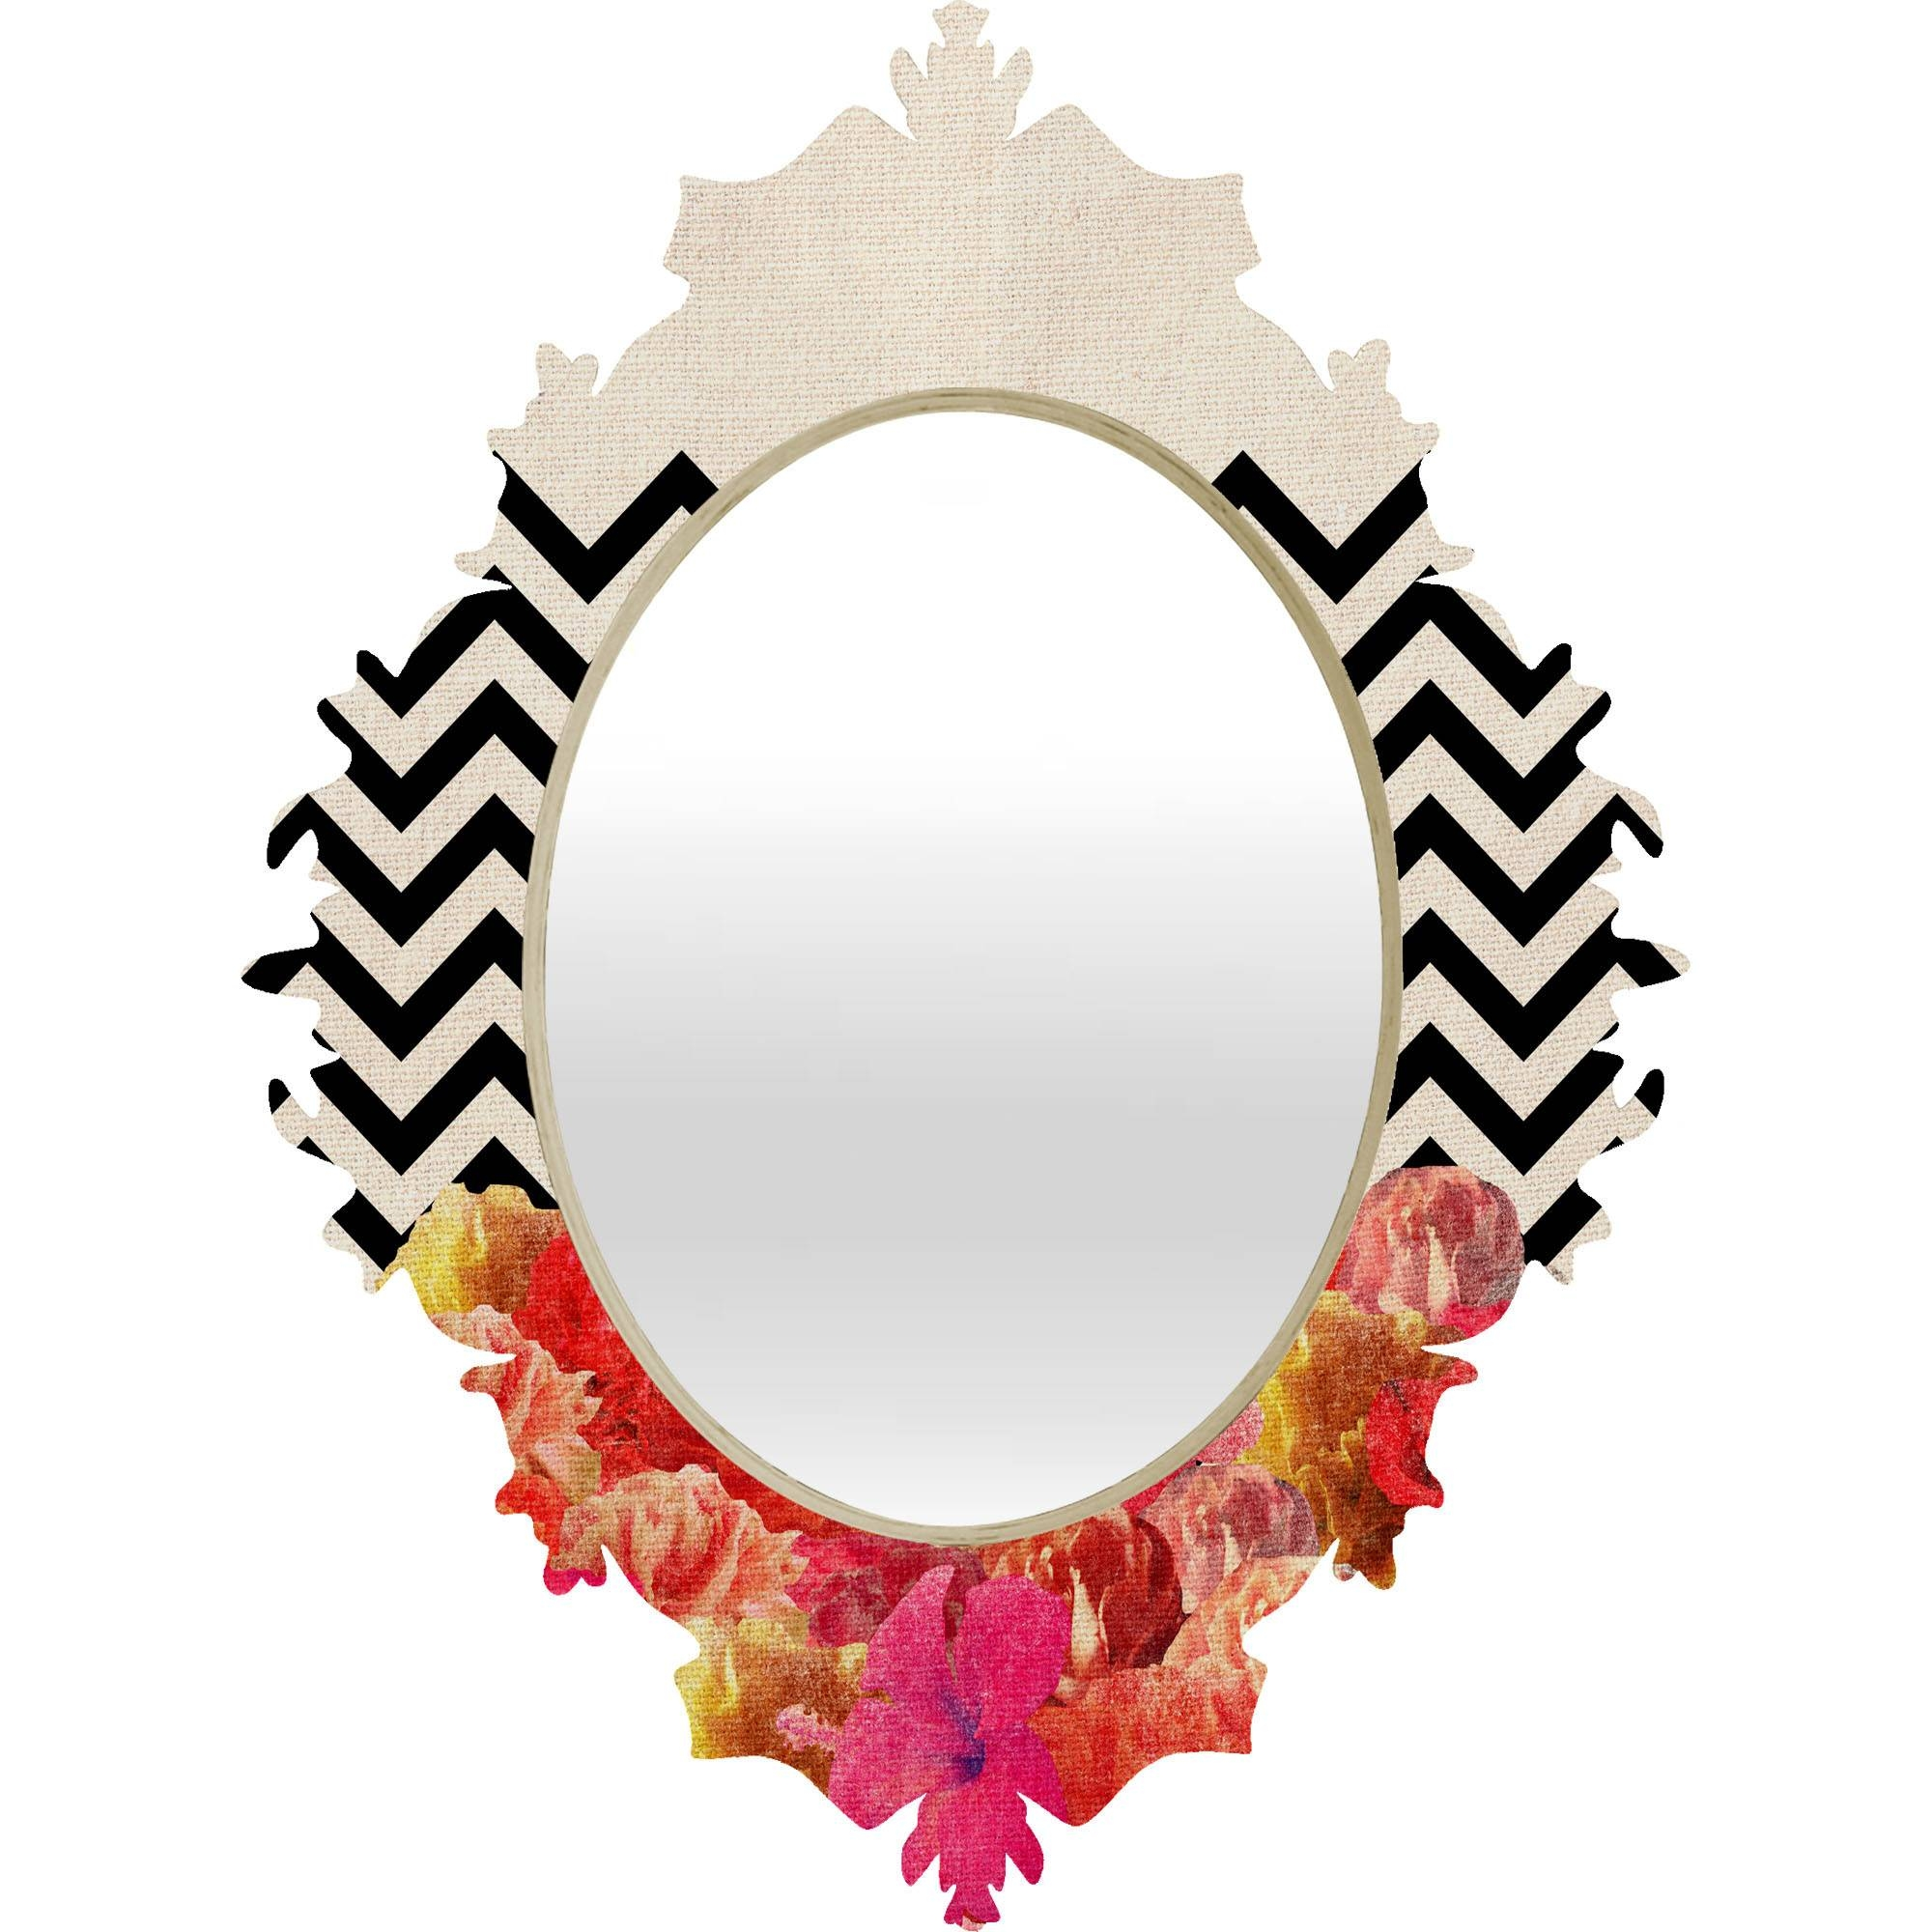 Bathroom: Astounding Baroque Mirror With Unique Frame For Bathroom inside White Baroque Mirrors (Image 5 of 25)